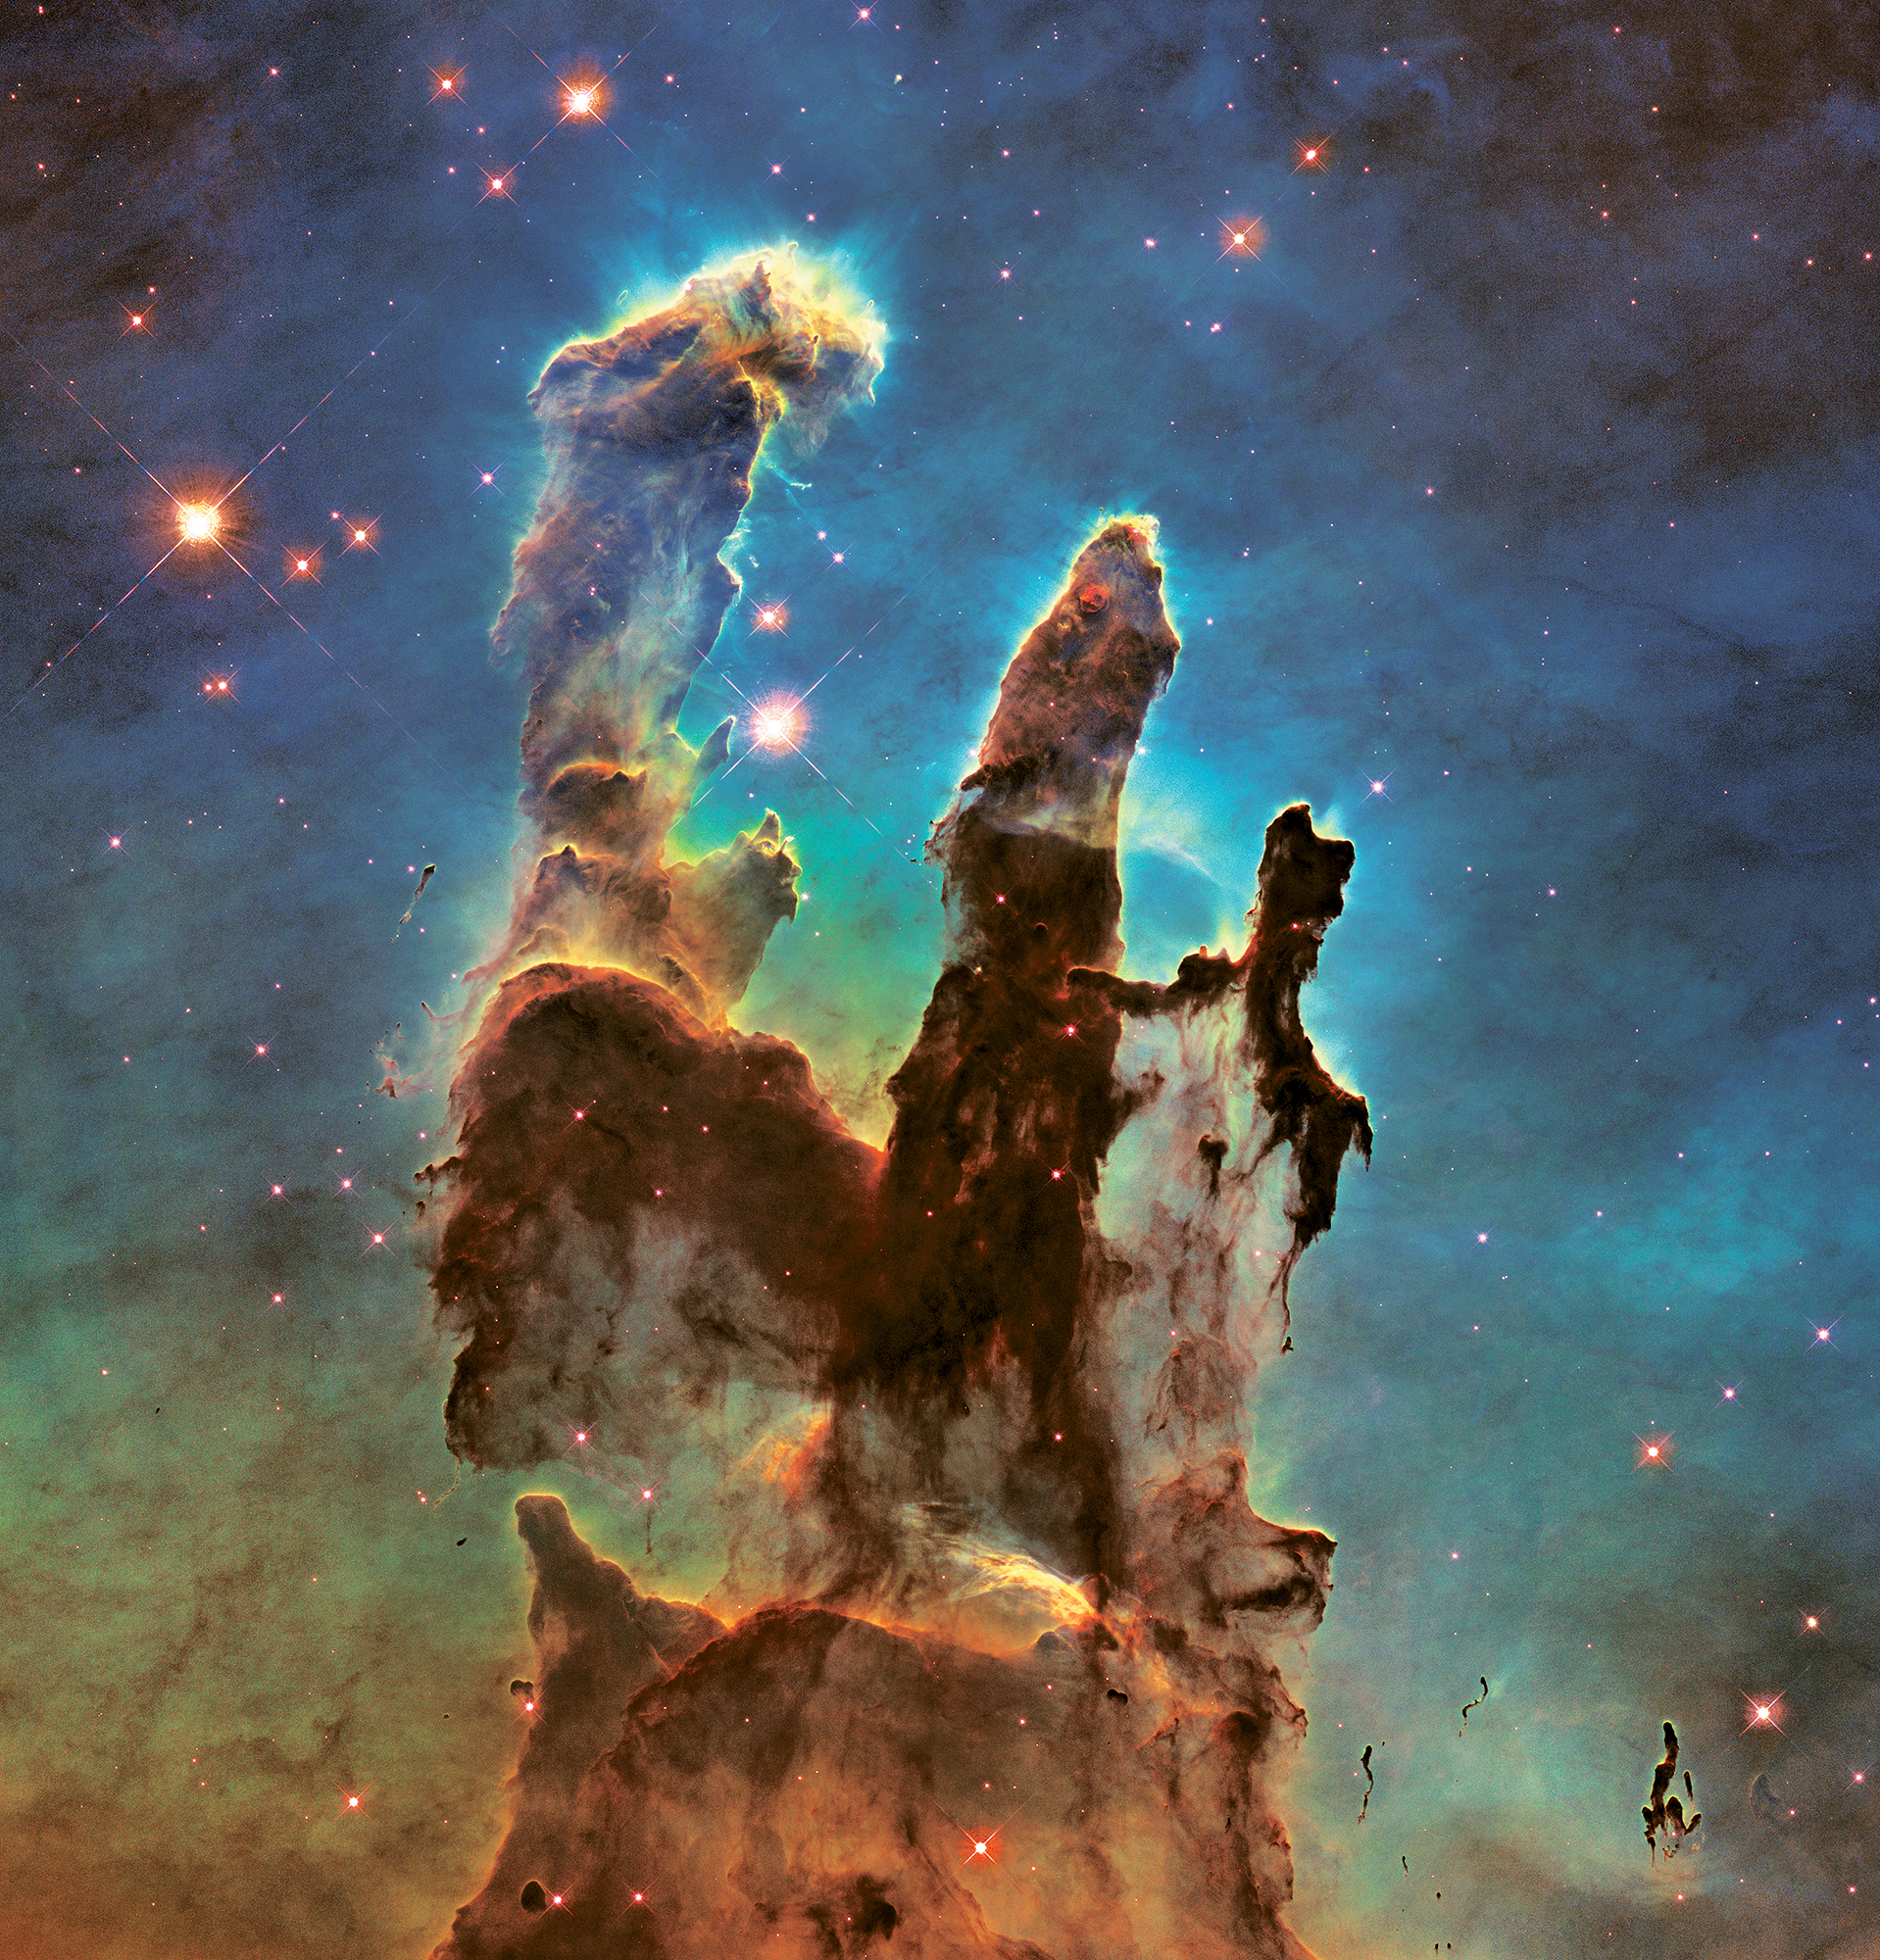 """NASA/ESA/Hubble Heritage Team, Eagle Nebula's """"Pillars of Creation,"""" 2015; from  Seeing Science  (Aperture and University of Maryland, Baltimore County, 2019)"""